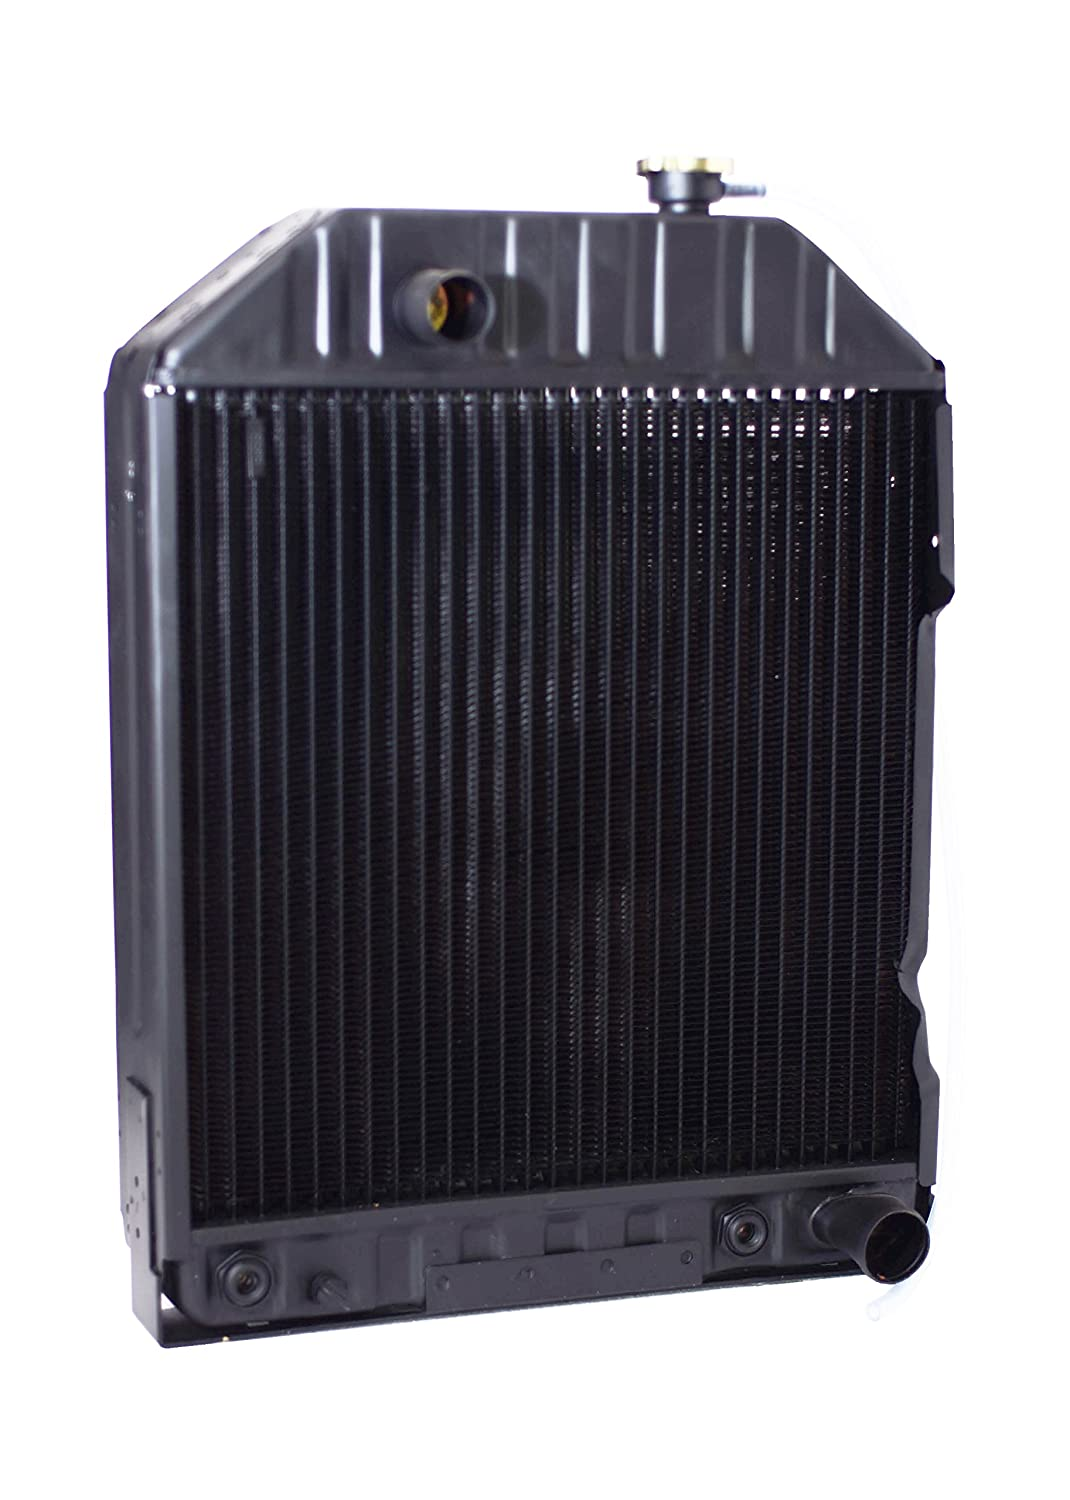 Armor 81829492 Radiator Fits Ford 6610, 5110, 6410, 7410, 7610 (